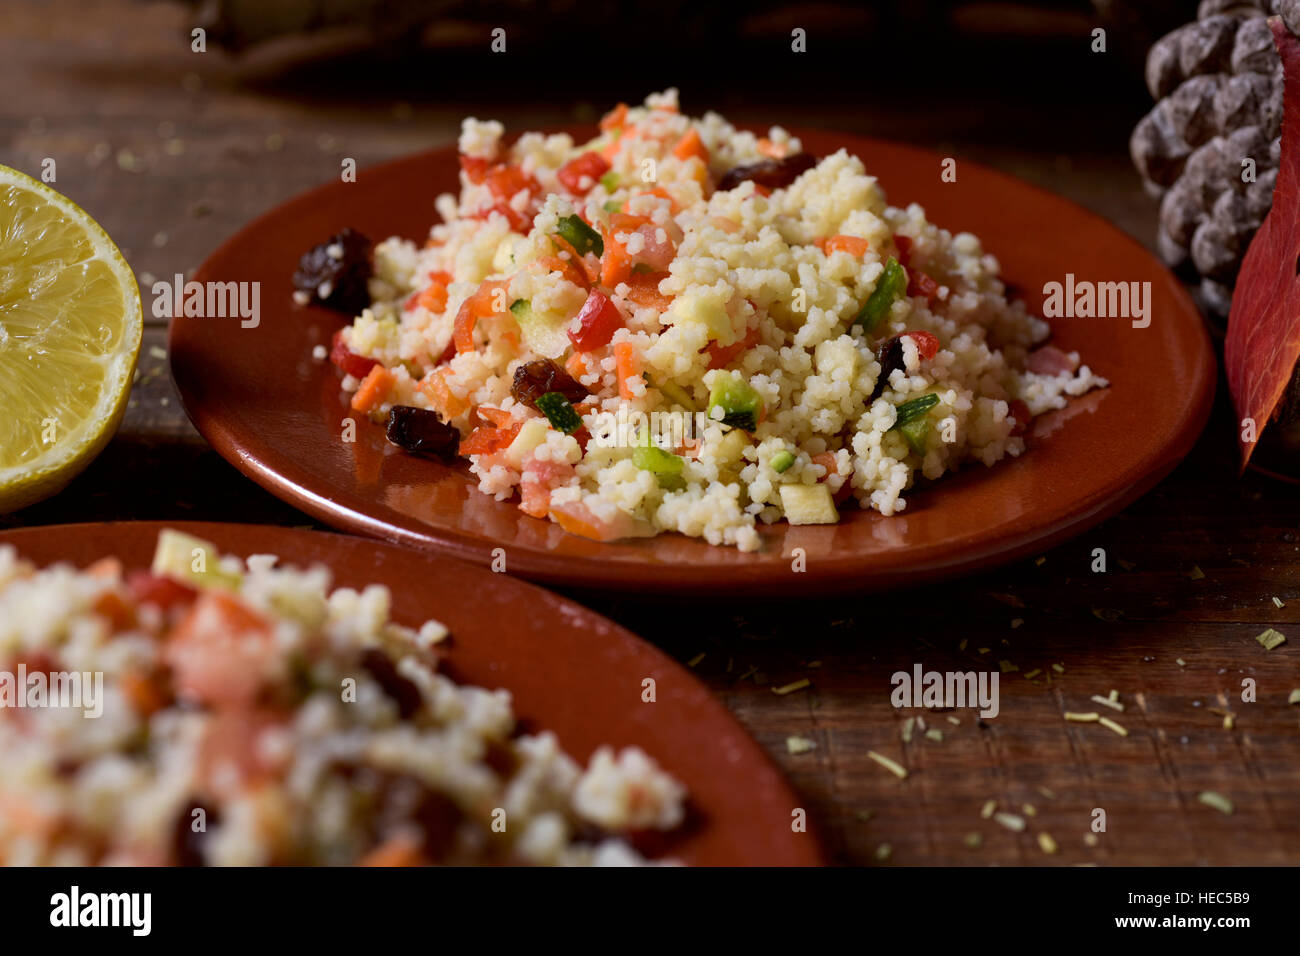 closeup of some earthenware plates with homemade tabbouleh, a